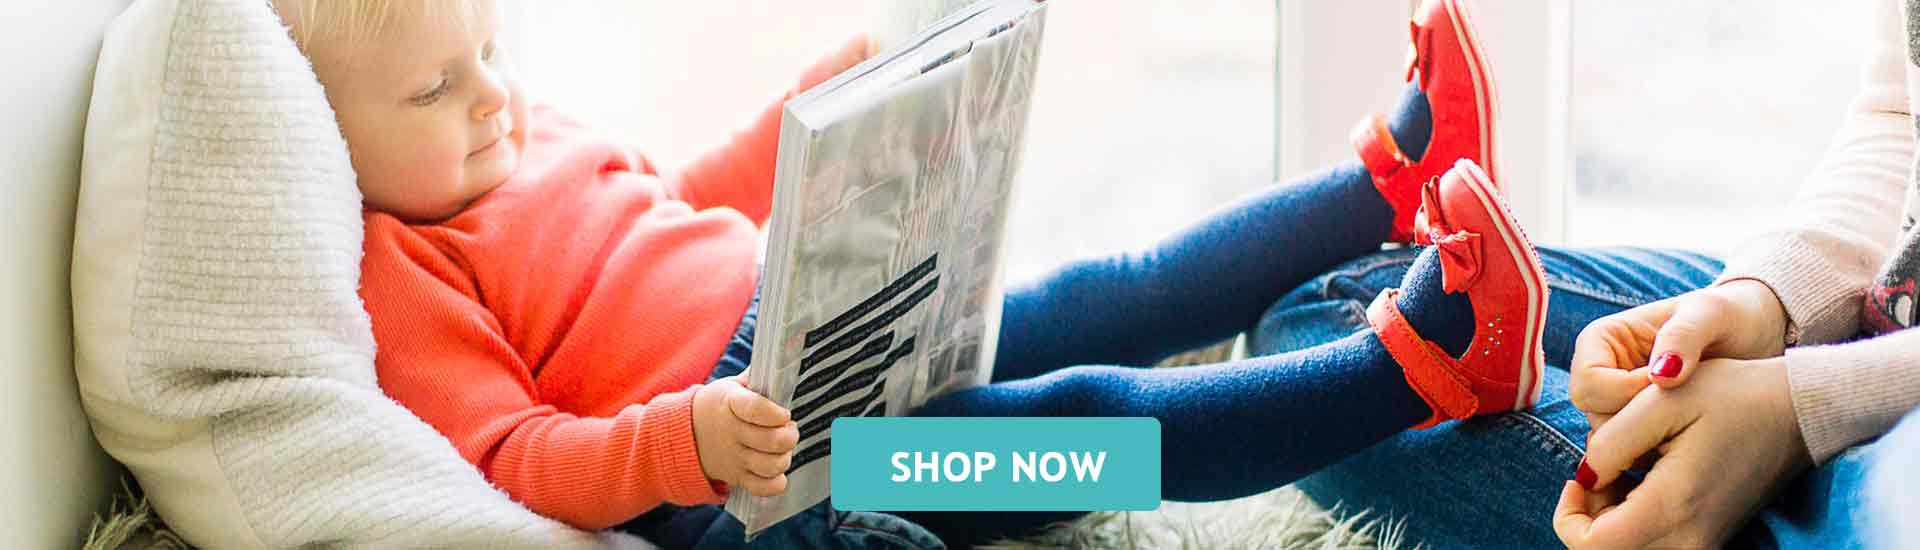 Educational Kids Toys Online Australia Shop